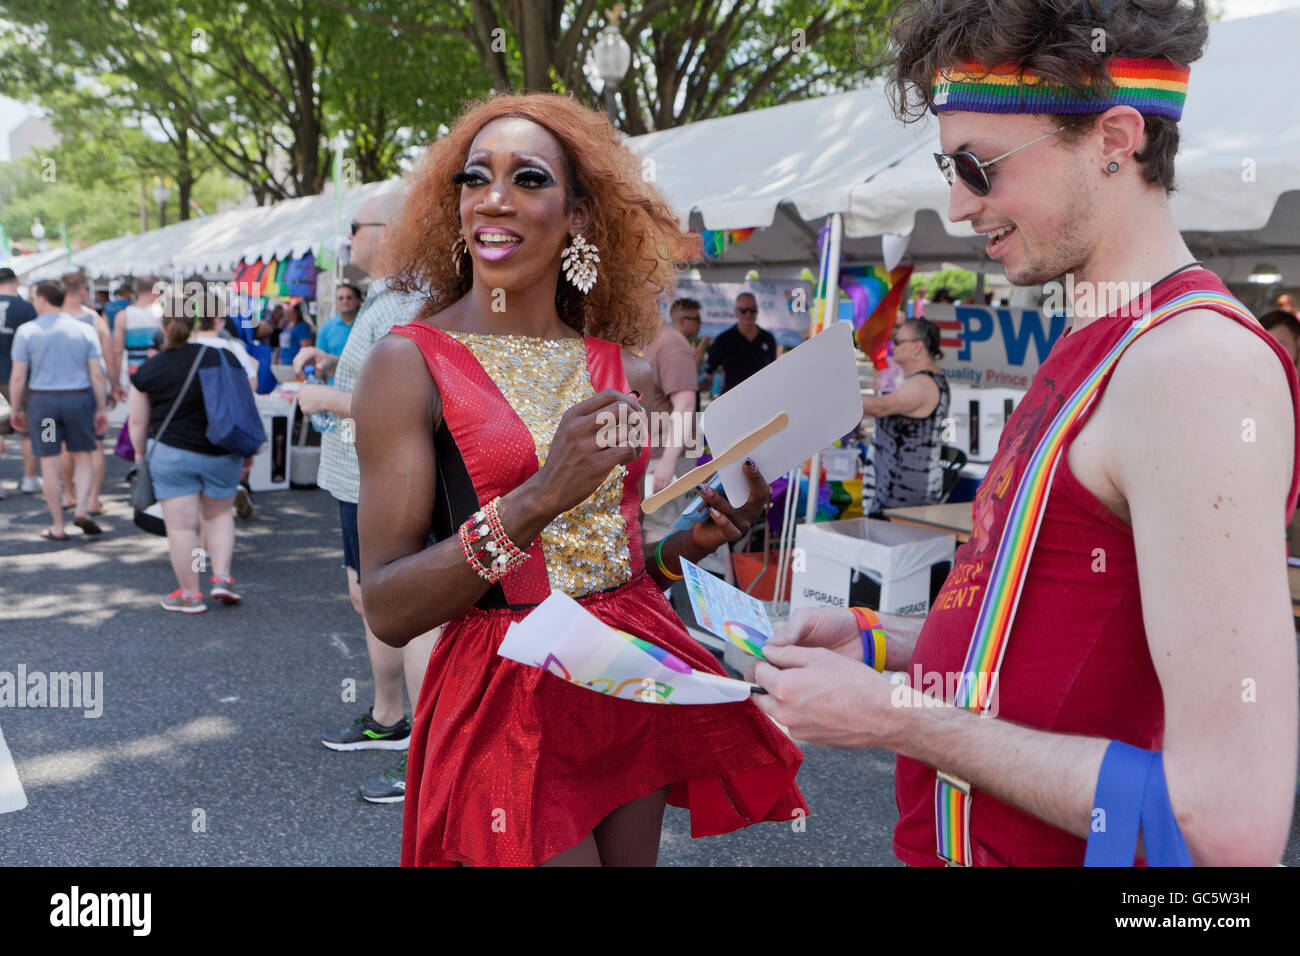 Black drag queen promotion model at an LGBT event - USA - Stock Image